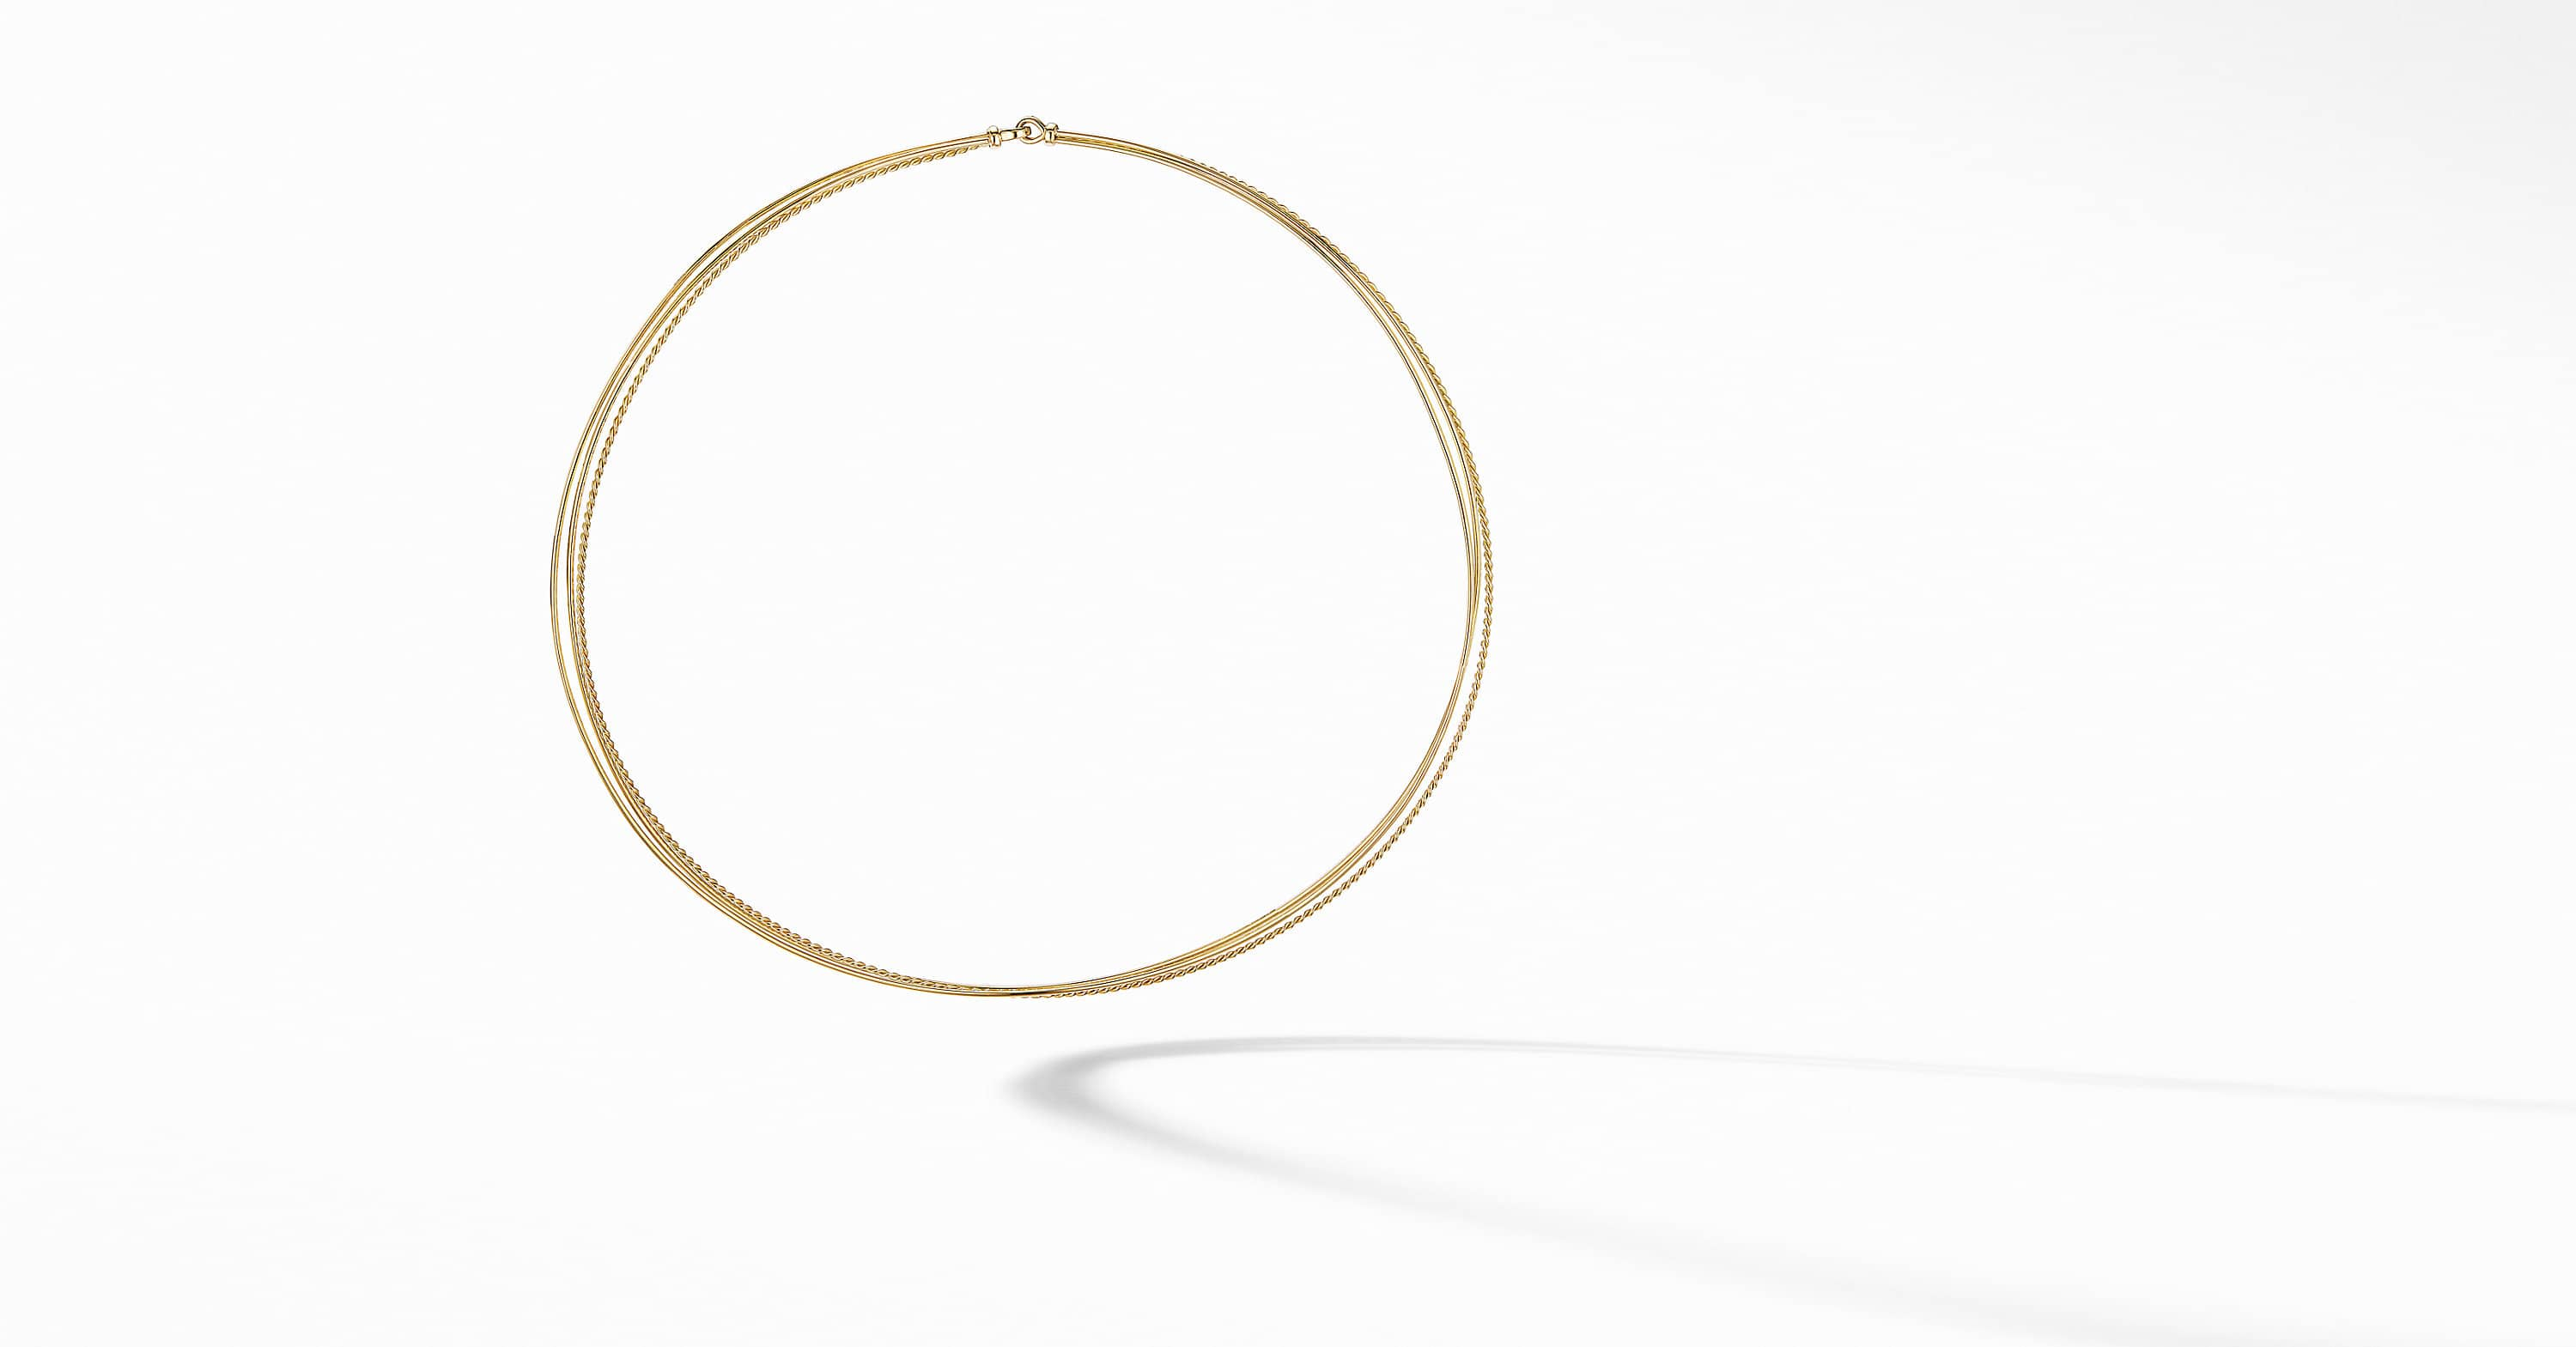 DY Elements Three-Row Hard Wire Necklace in 18K Yellow Gold